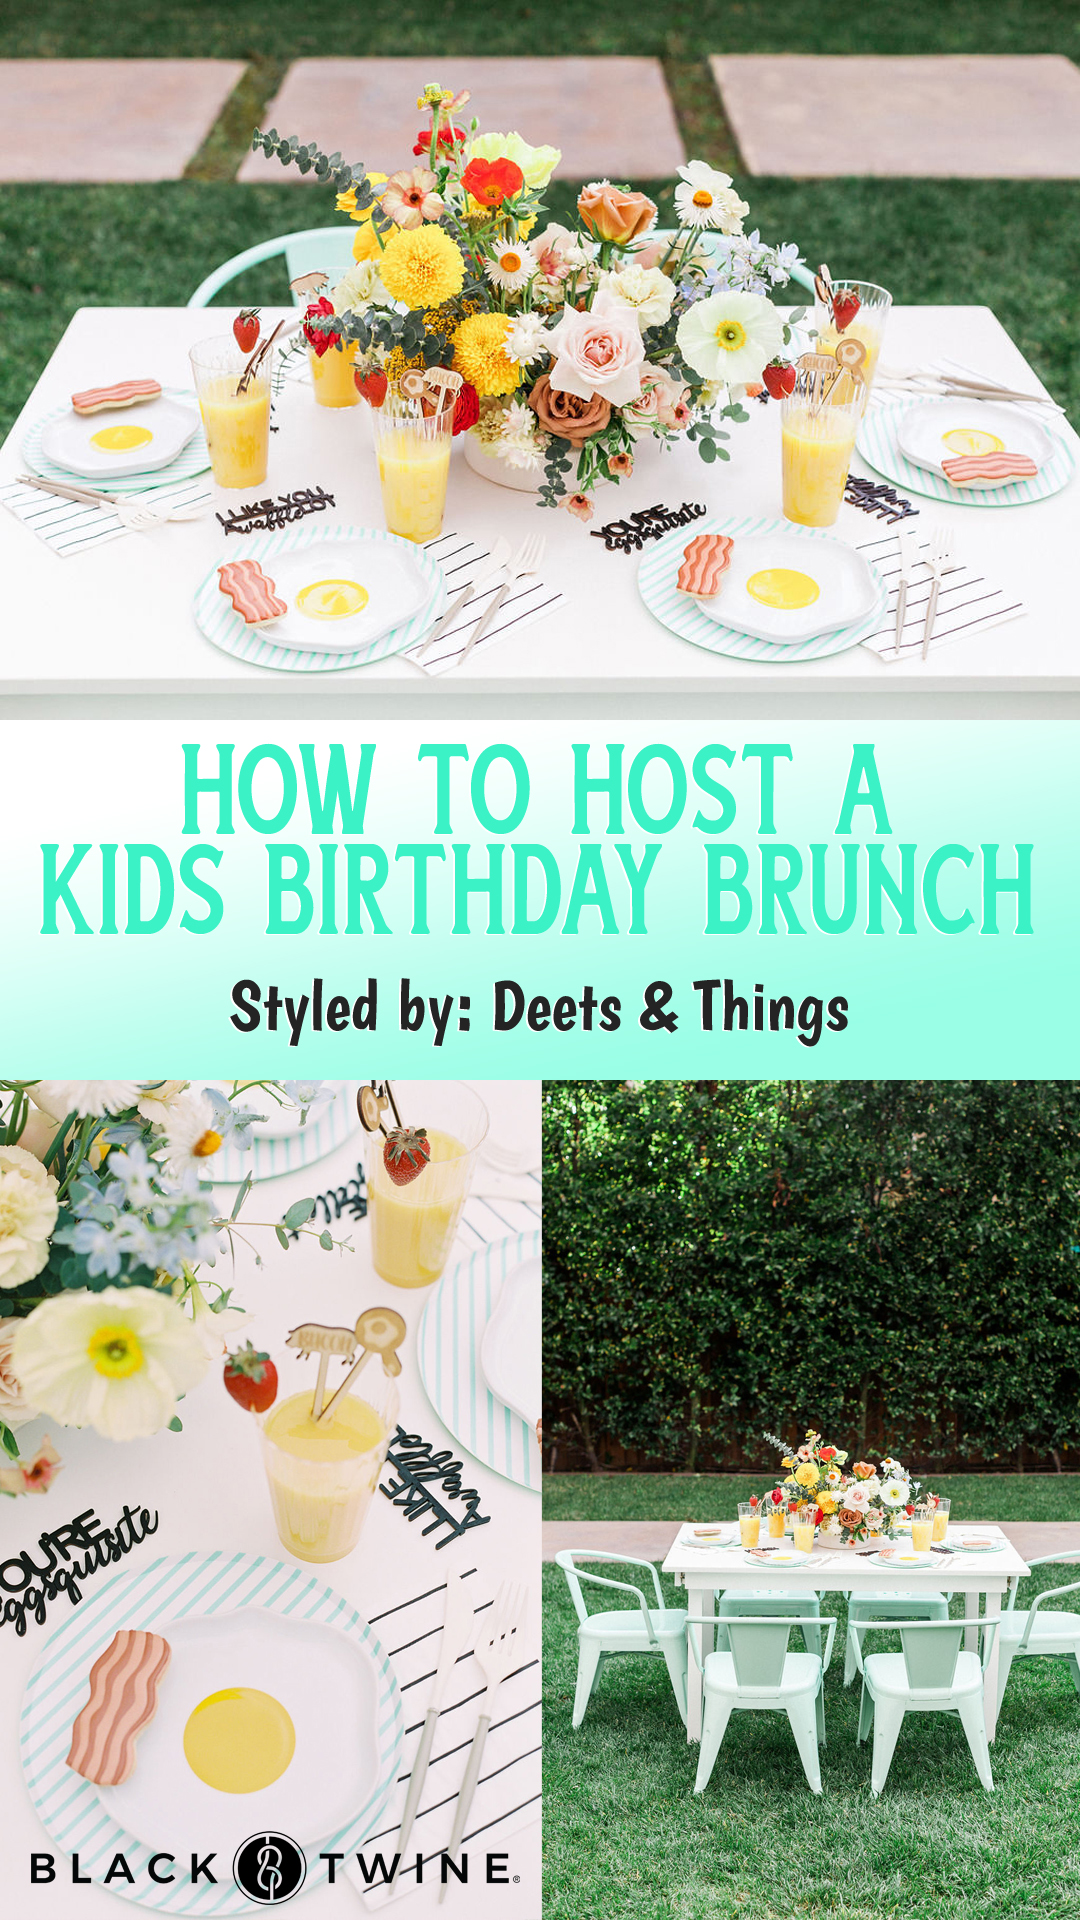 Collage Photos from Kids Birthday Brunch Styled by Deets & Things | Black Twine